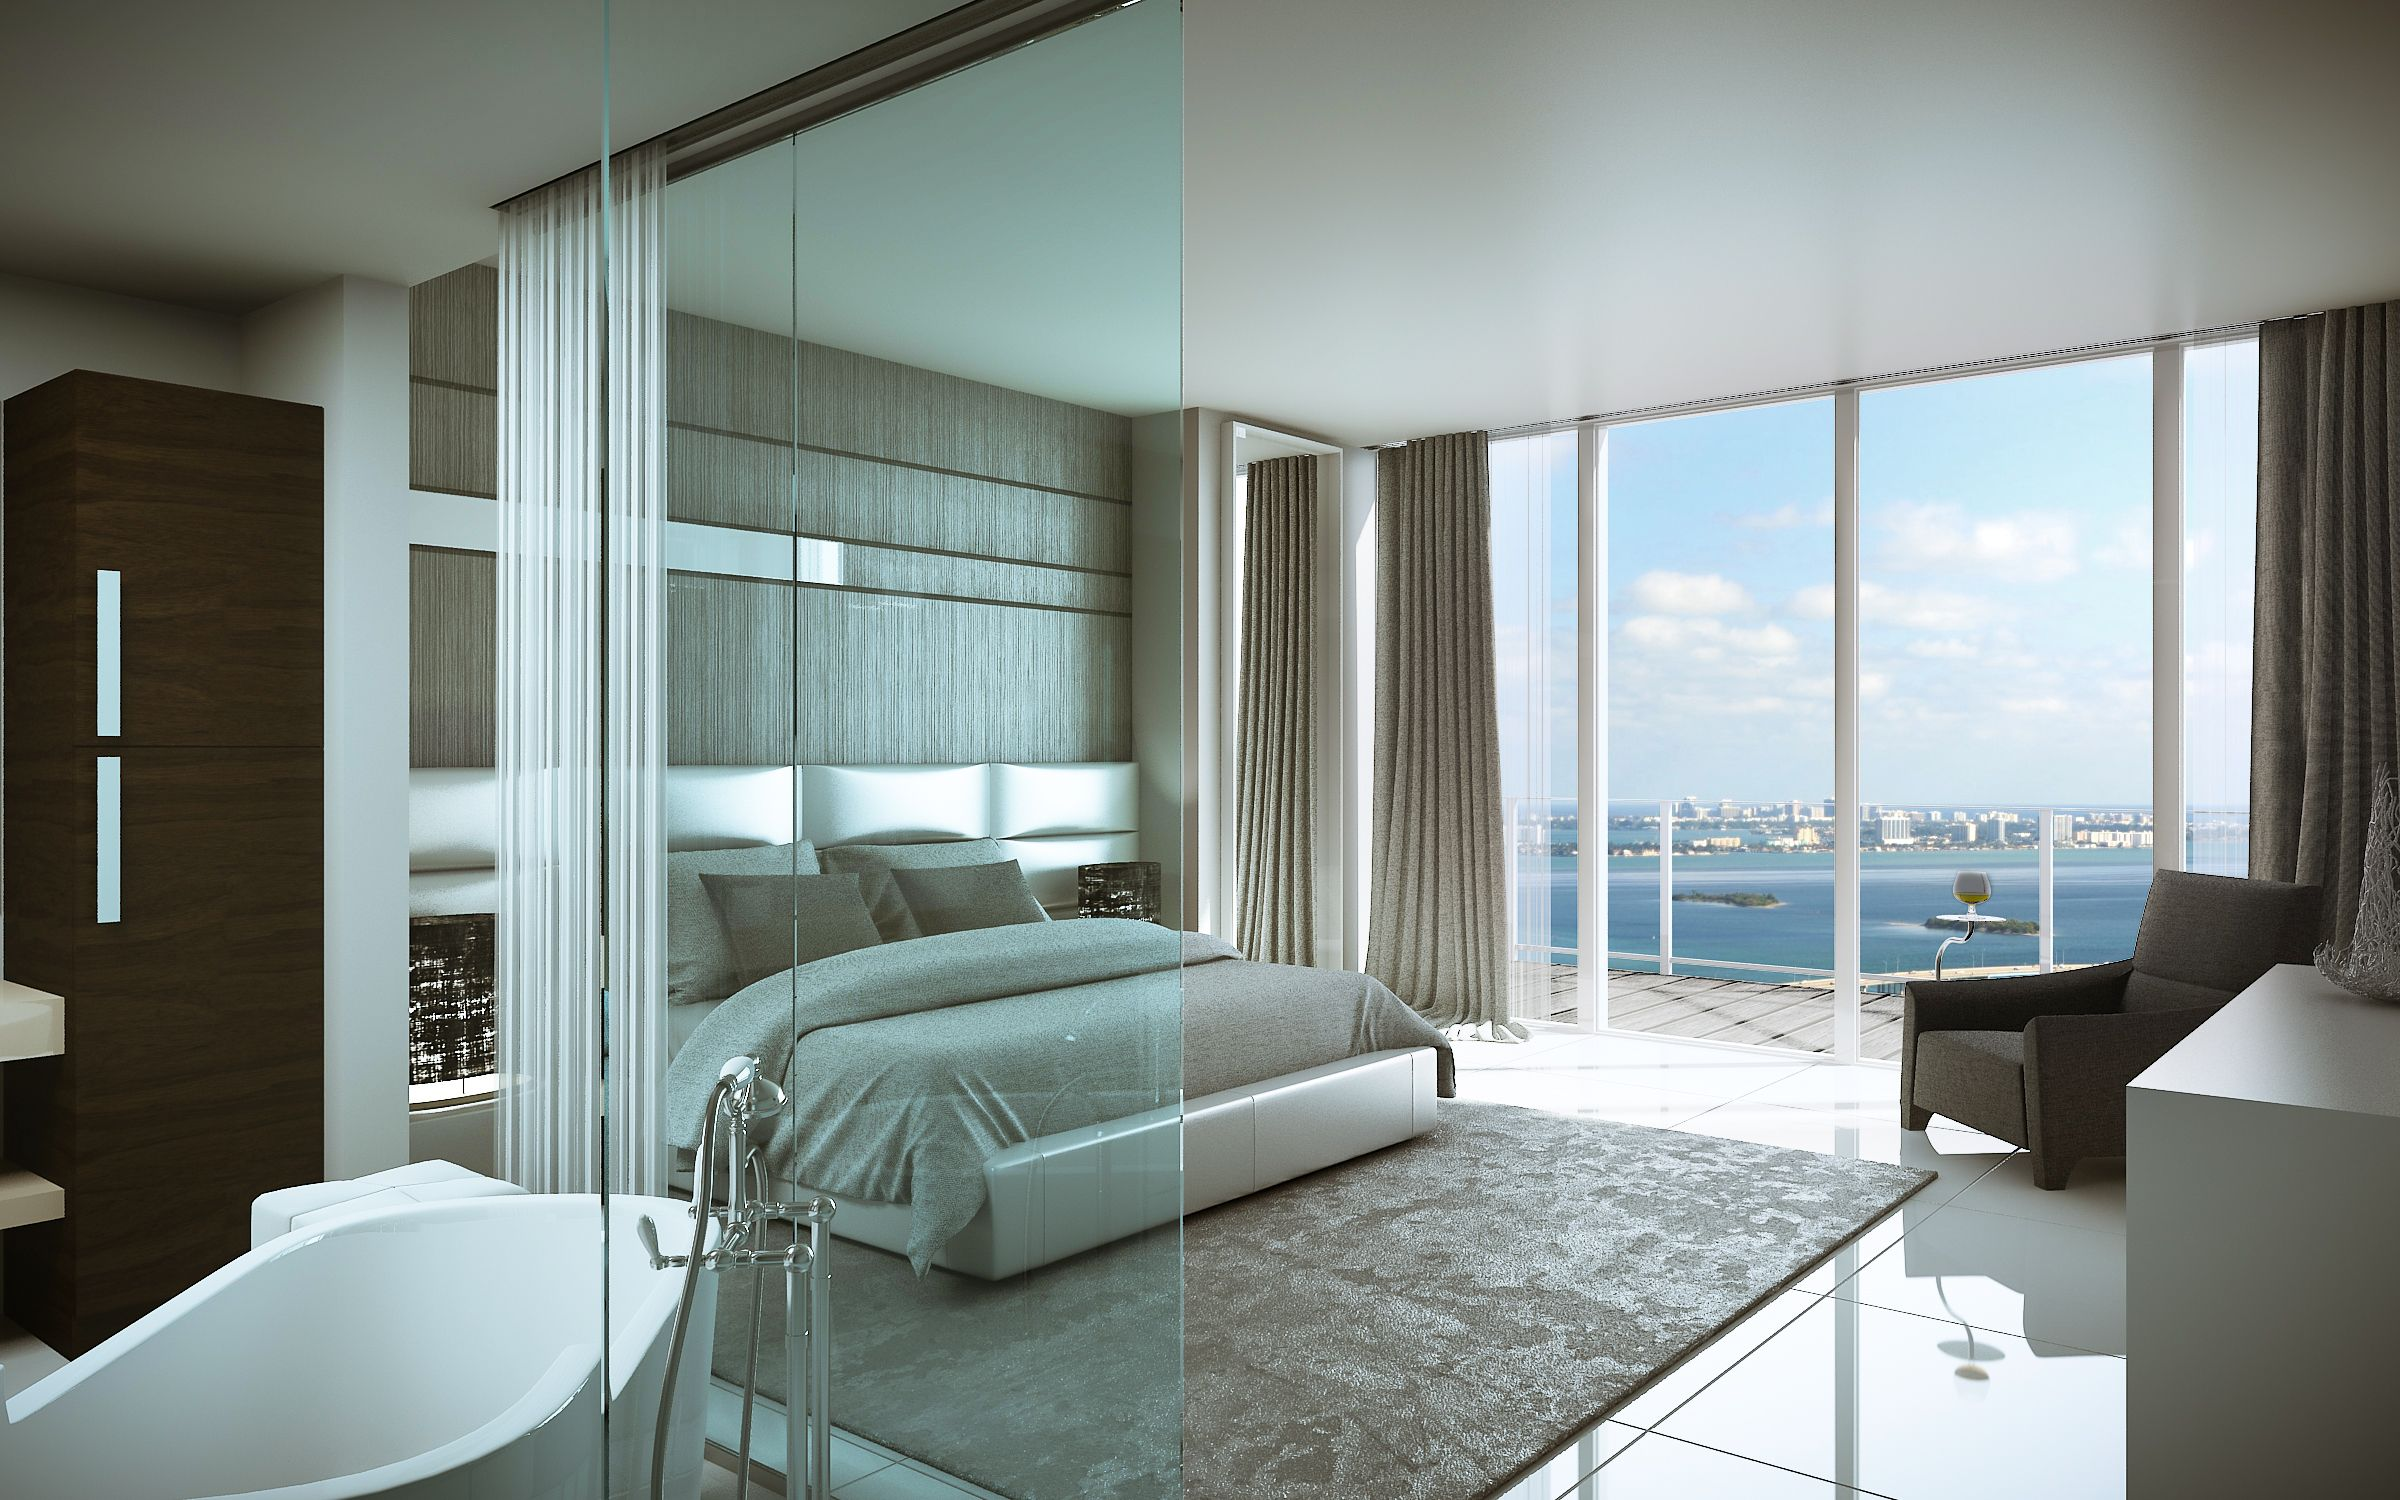 Paramount Bay - Miami - High quality Render and Virtual ...